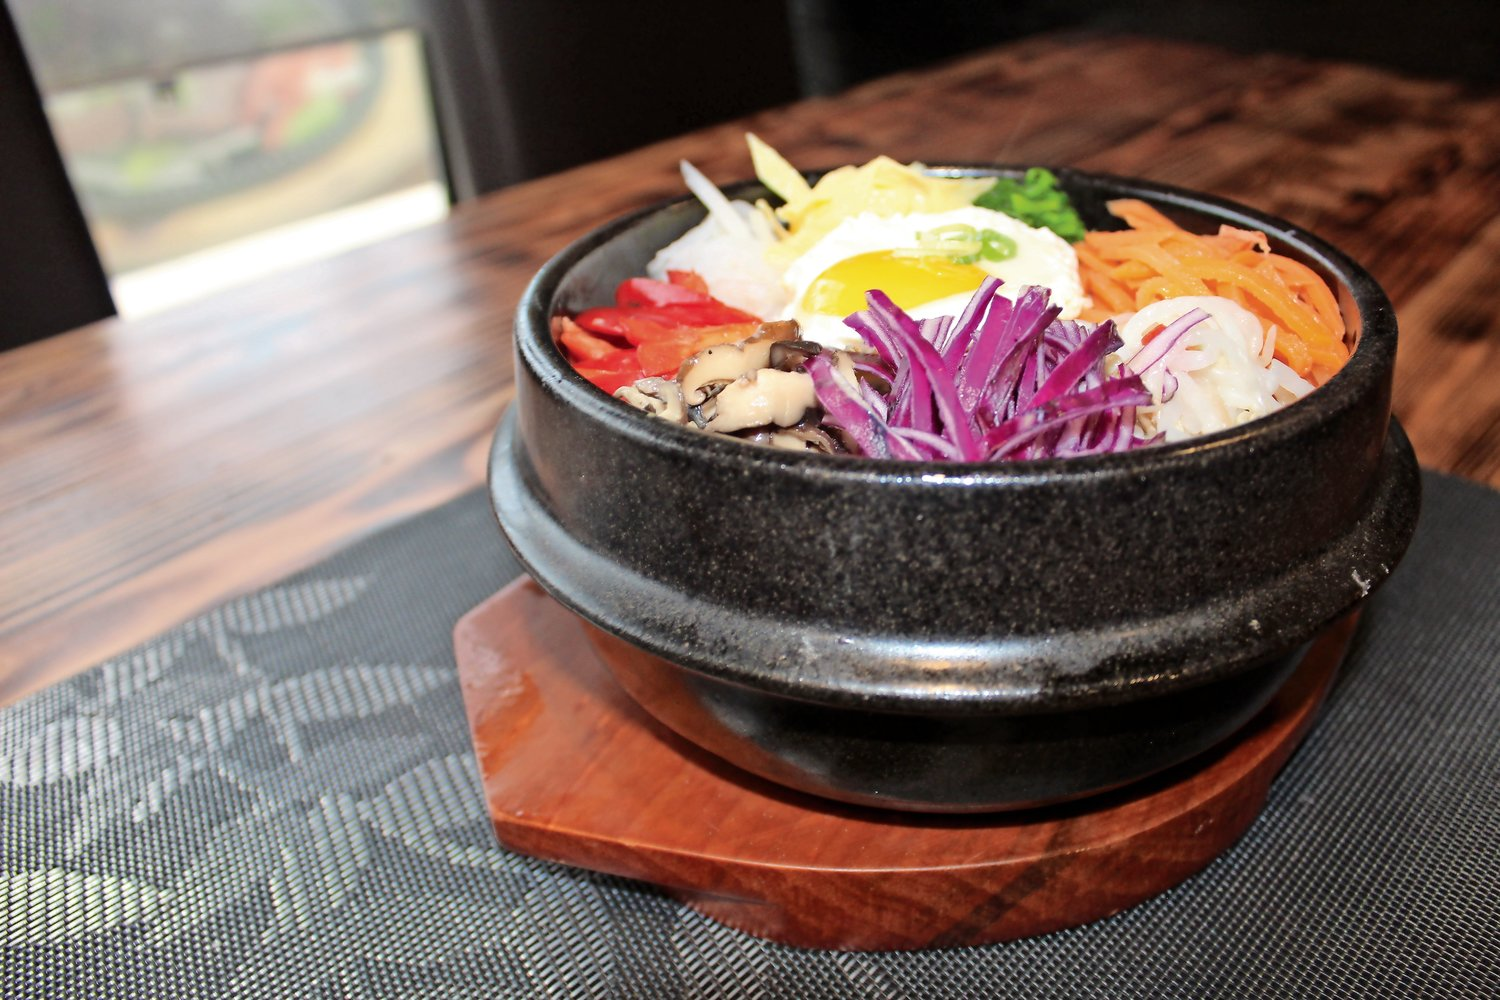 The dolsot-bibimbap is a vibrant Korean rice dish topped with a colorful array of vegetables and served in a stone pot.